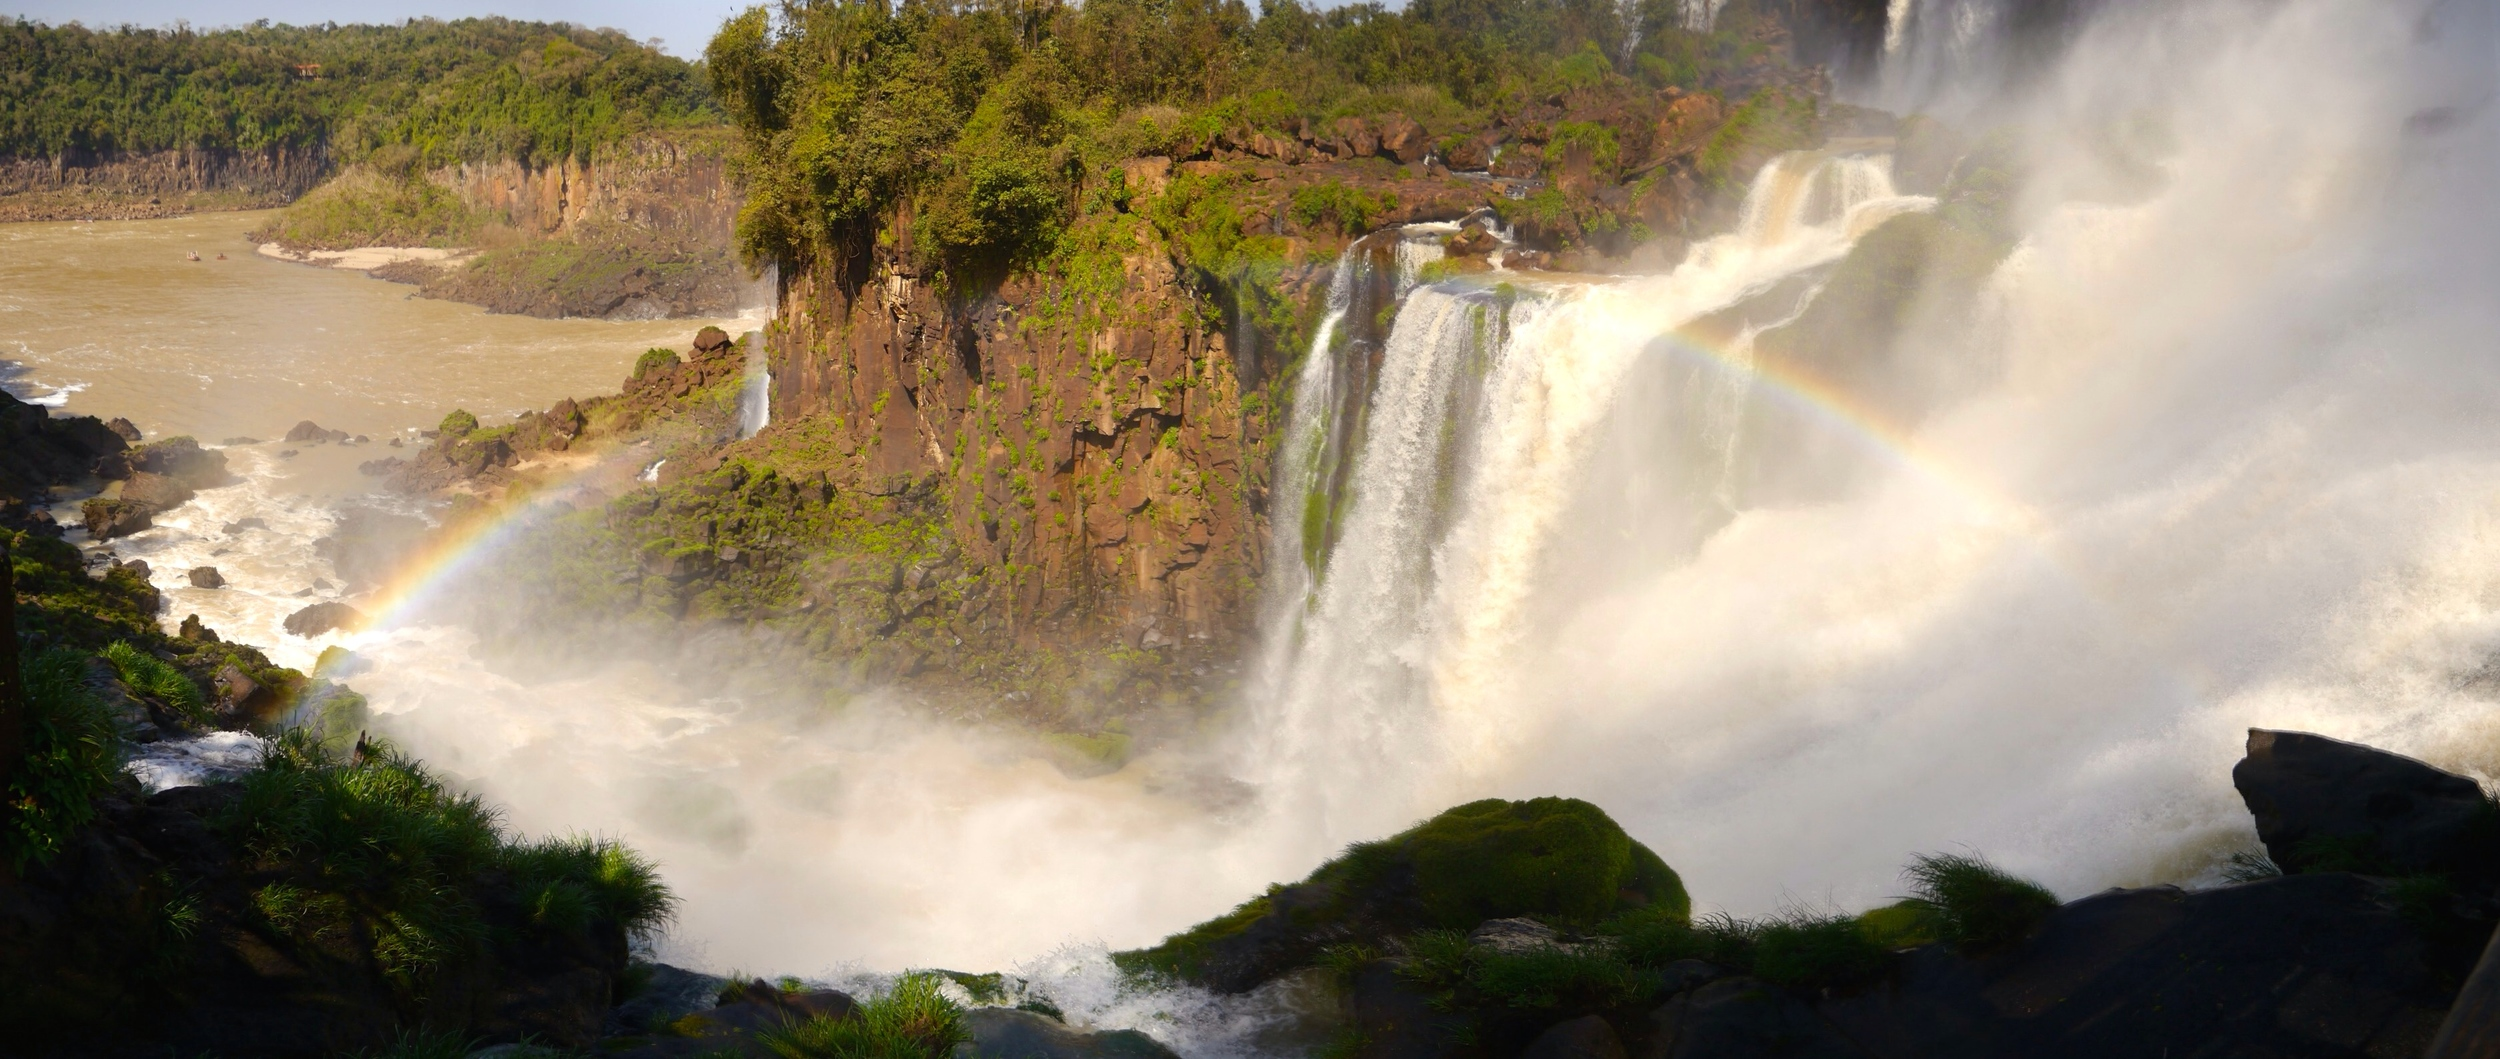 (3) On sunny days, vibrant rainbows appear around every bend at the waterfalls..JPG